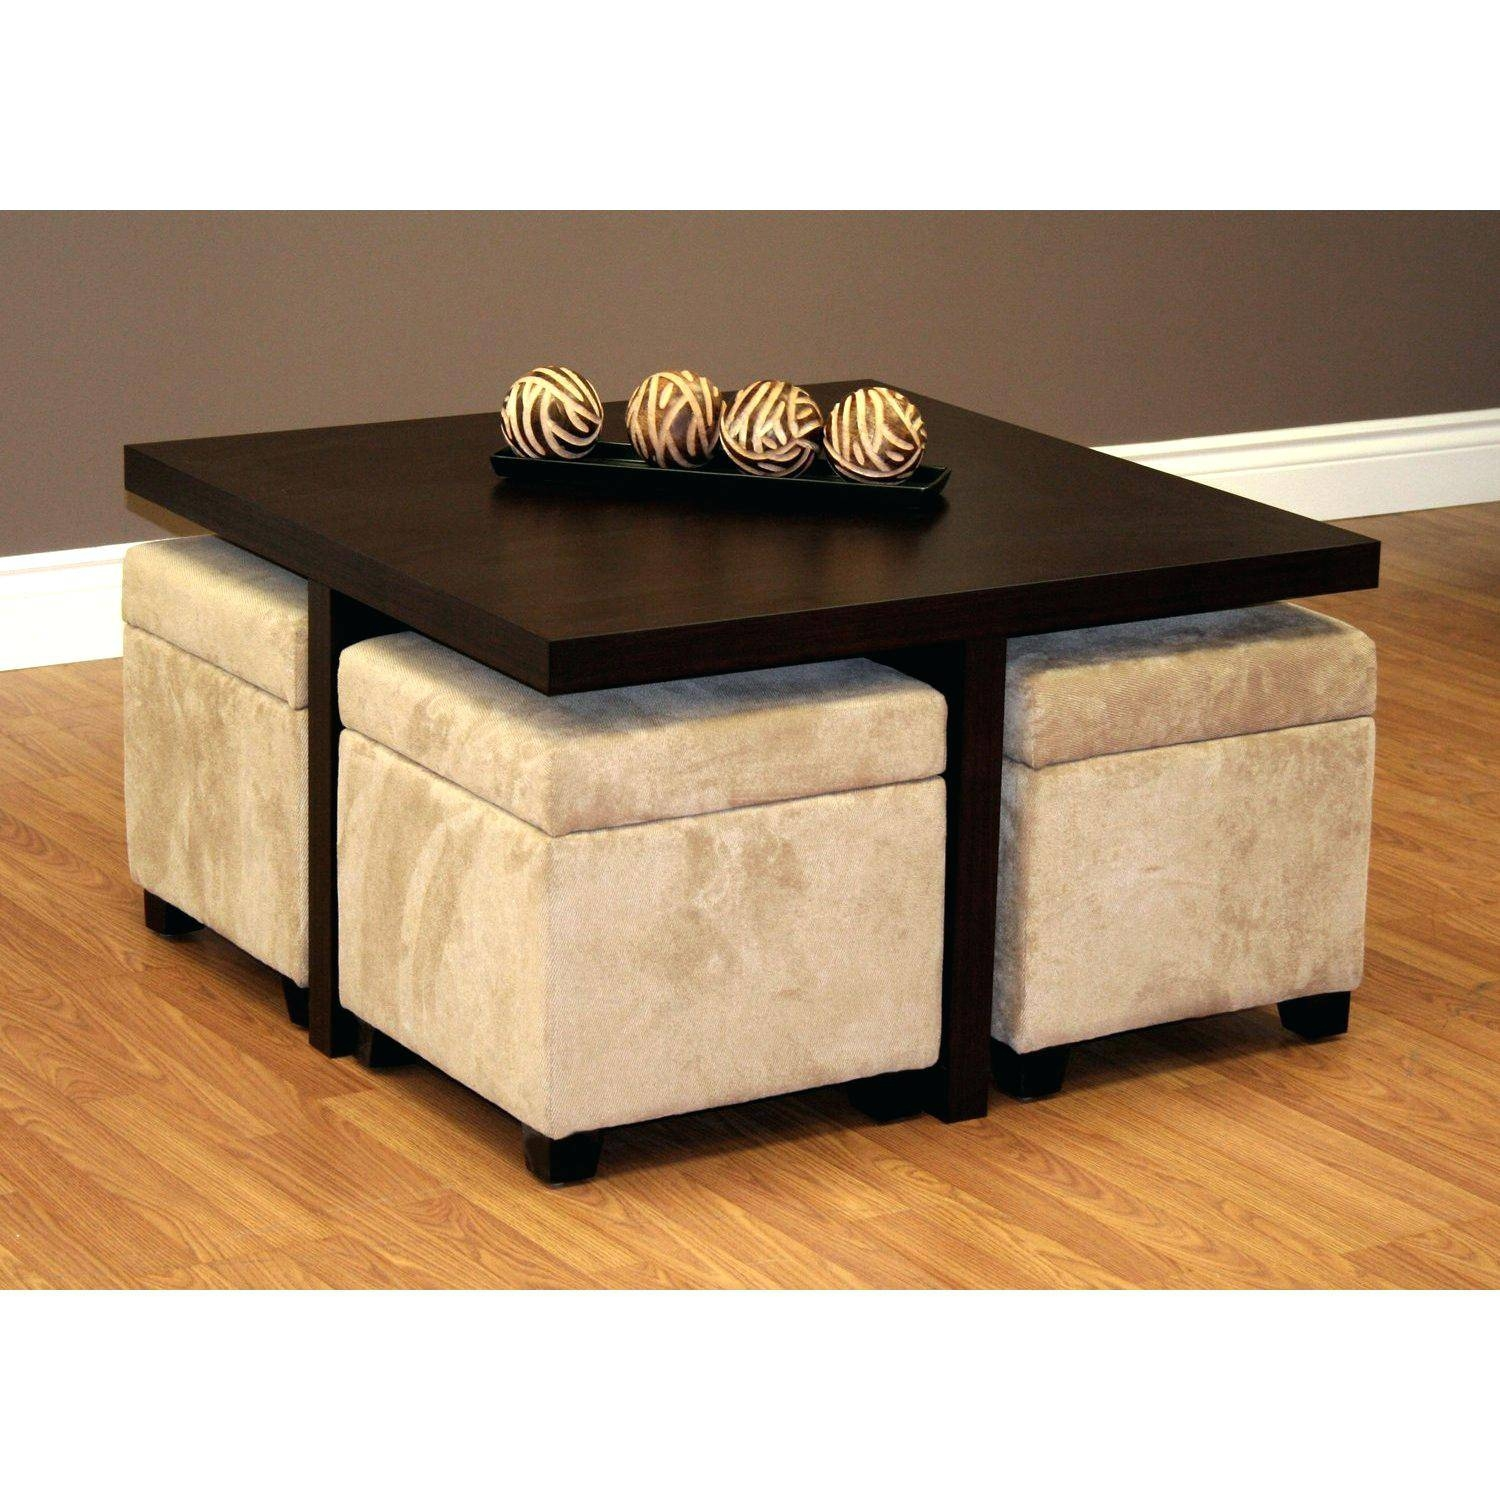 Black Coffee Table With Storage Drawers Full Size Of Largeikea within Black Coffee Tables With Storage (Image 2 of 30)